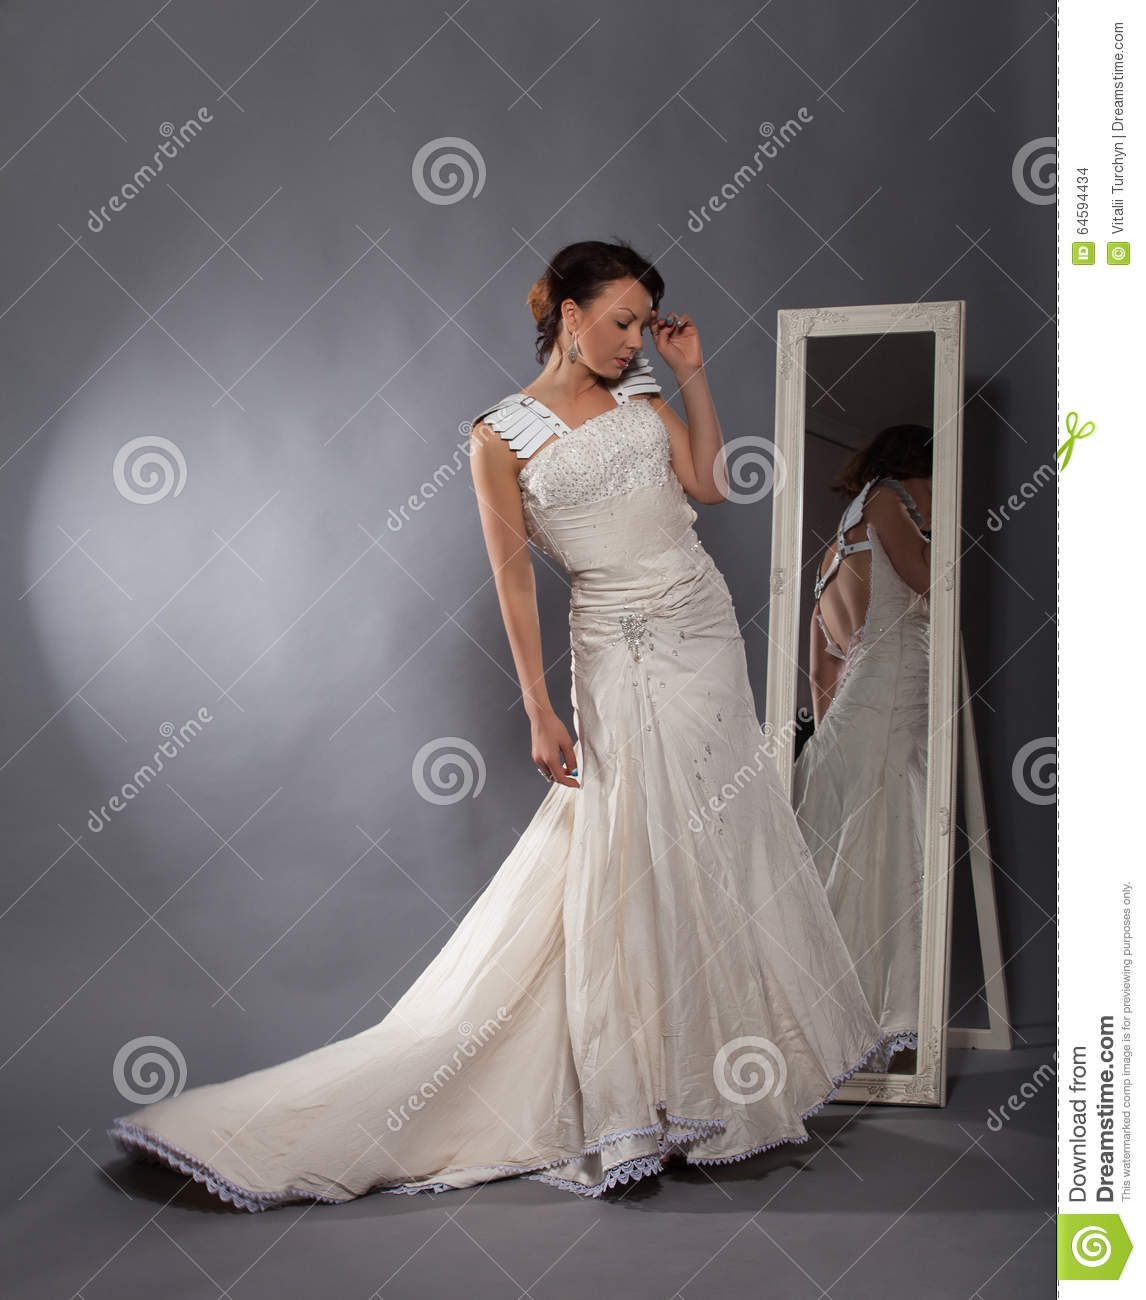 Beautiful girl in a wedding dress stock photo image of for Leather wedding dresses black